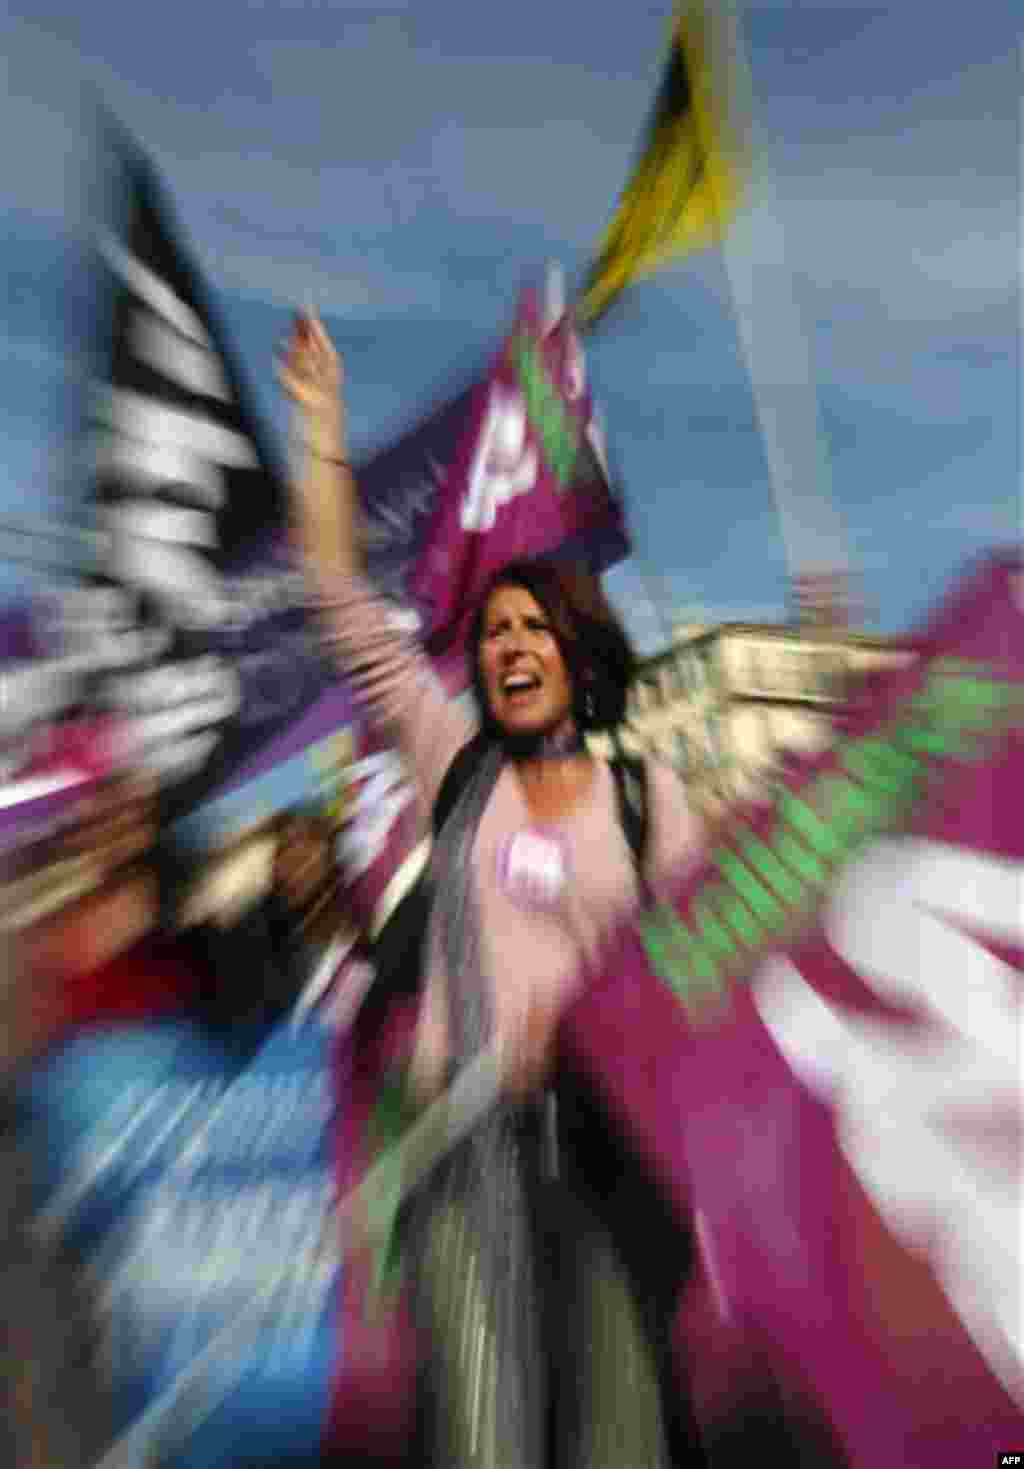 A woman shouts slogans during a demonstration in Marseille, southern France, Thursday, Oct. 28, 2010. Thursday saw more nationwide street protests and strike-caused travel woes even though parliament has already approved President Nicolas Sarkozy's unpopu